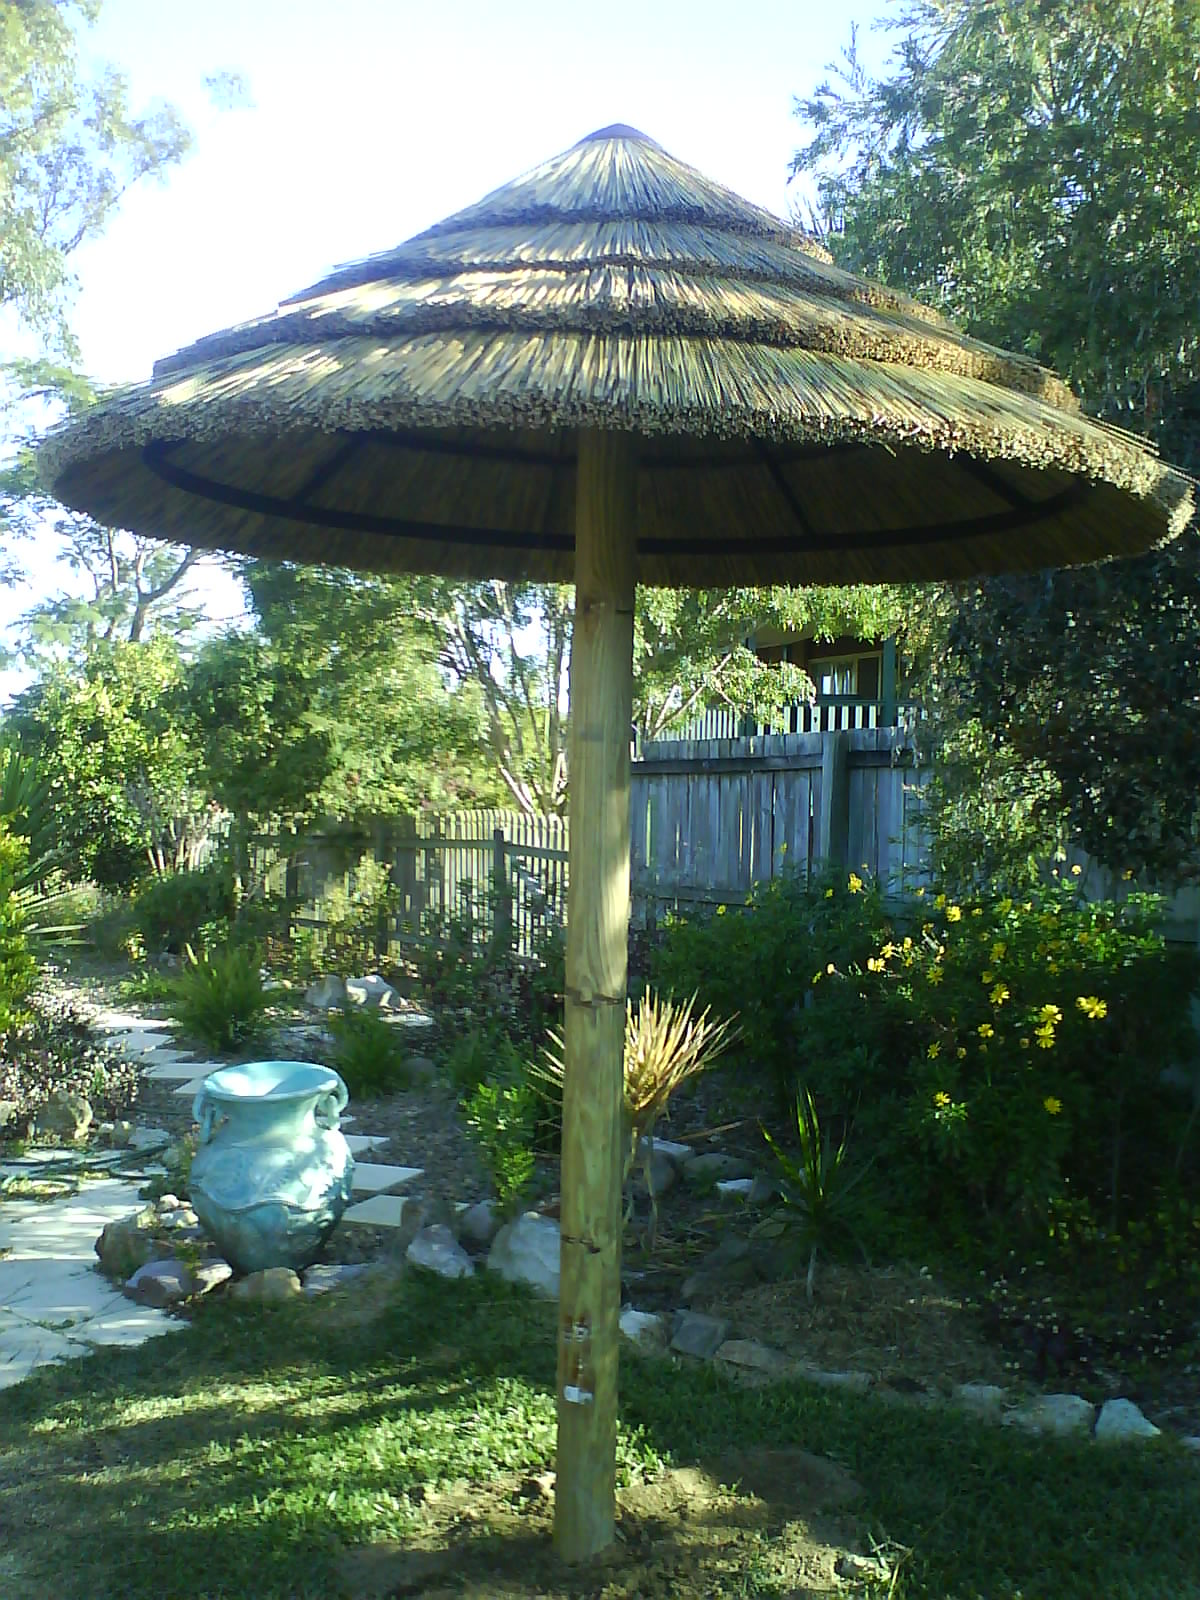 African Cape Reed Umbrella